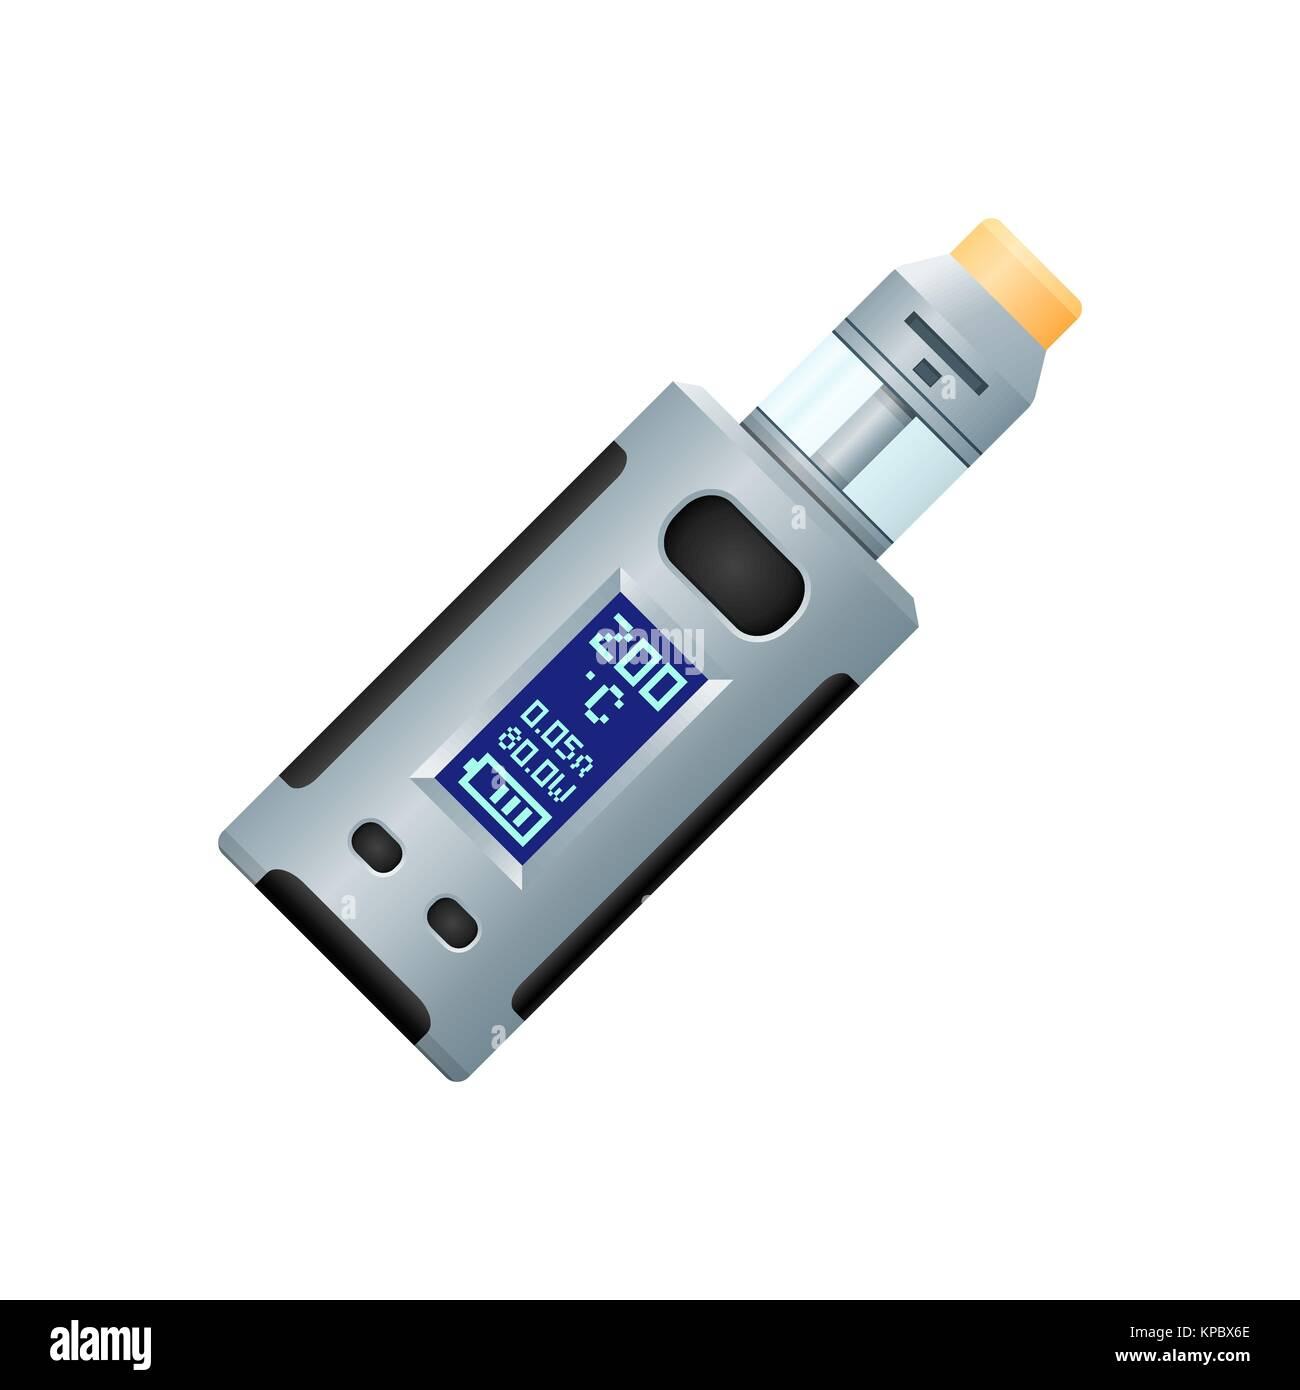 vector colorful flat design variable wattage thermo control box mod vaporizer device with RDTA type atomizer realistic - Stock Image